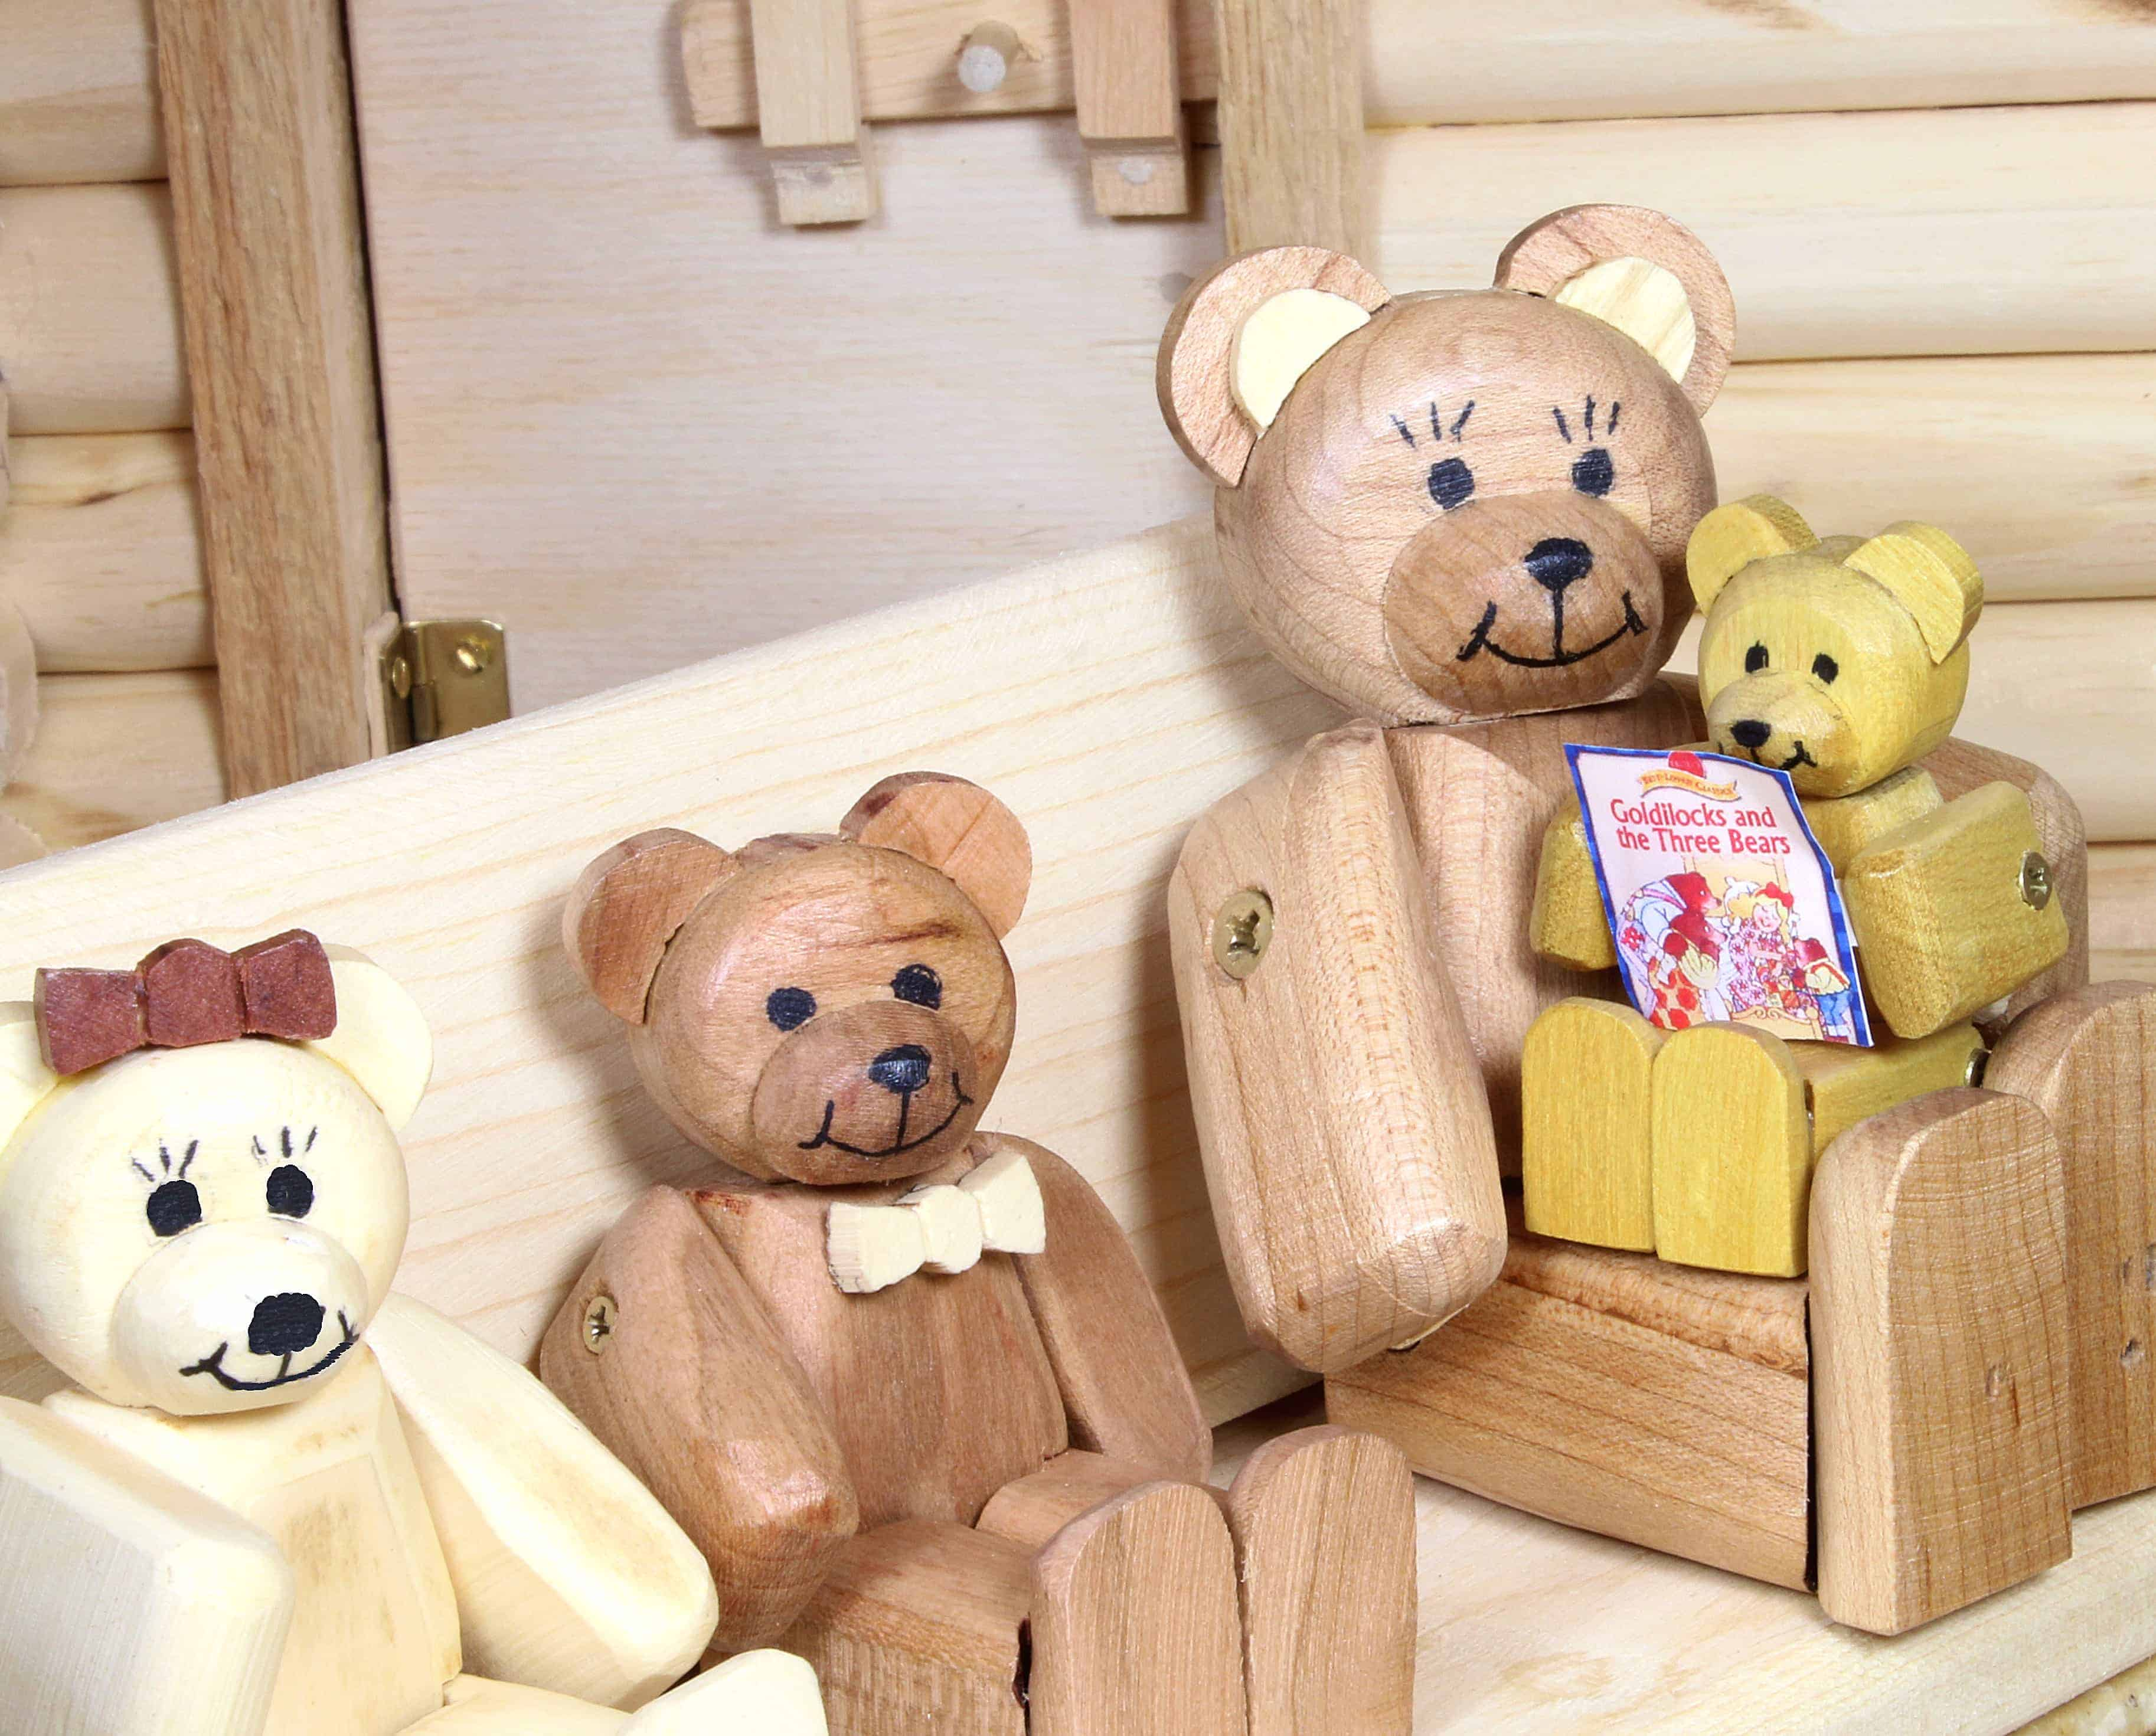 Bears arms, legs and heads move. Children adore them